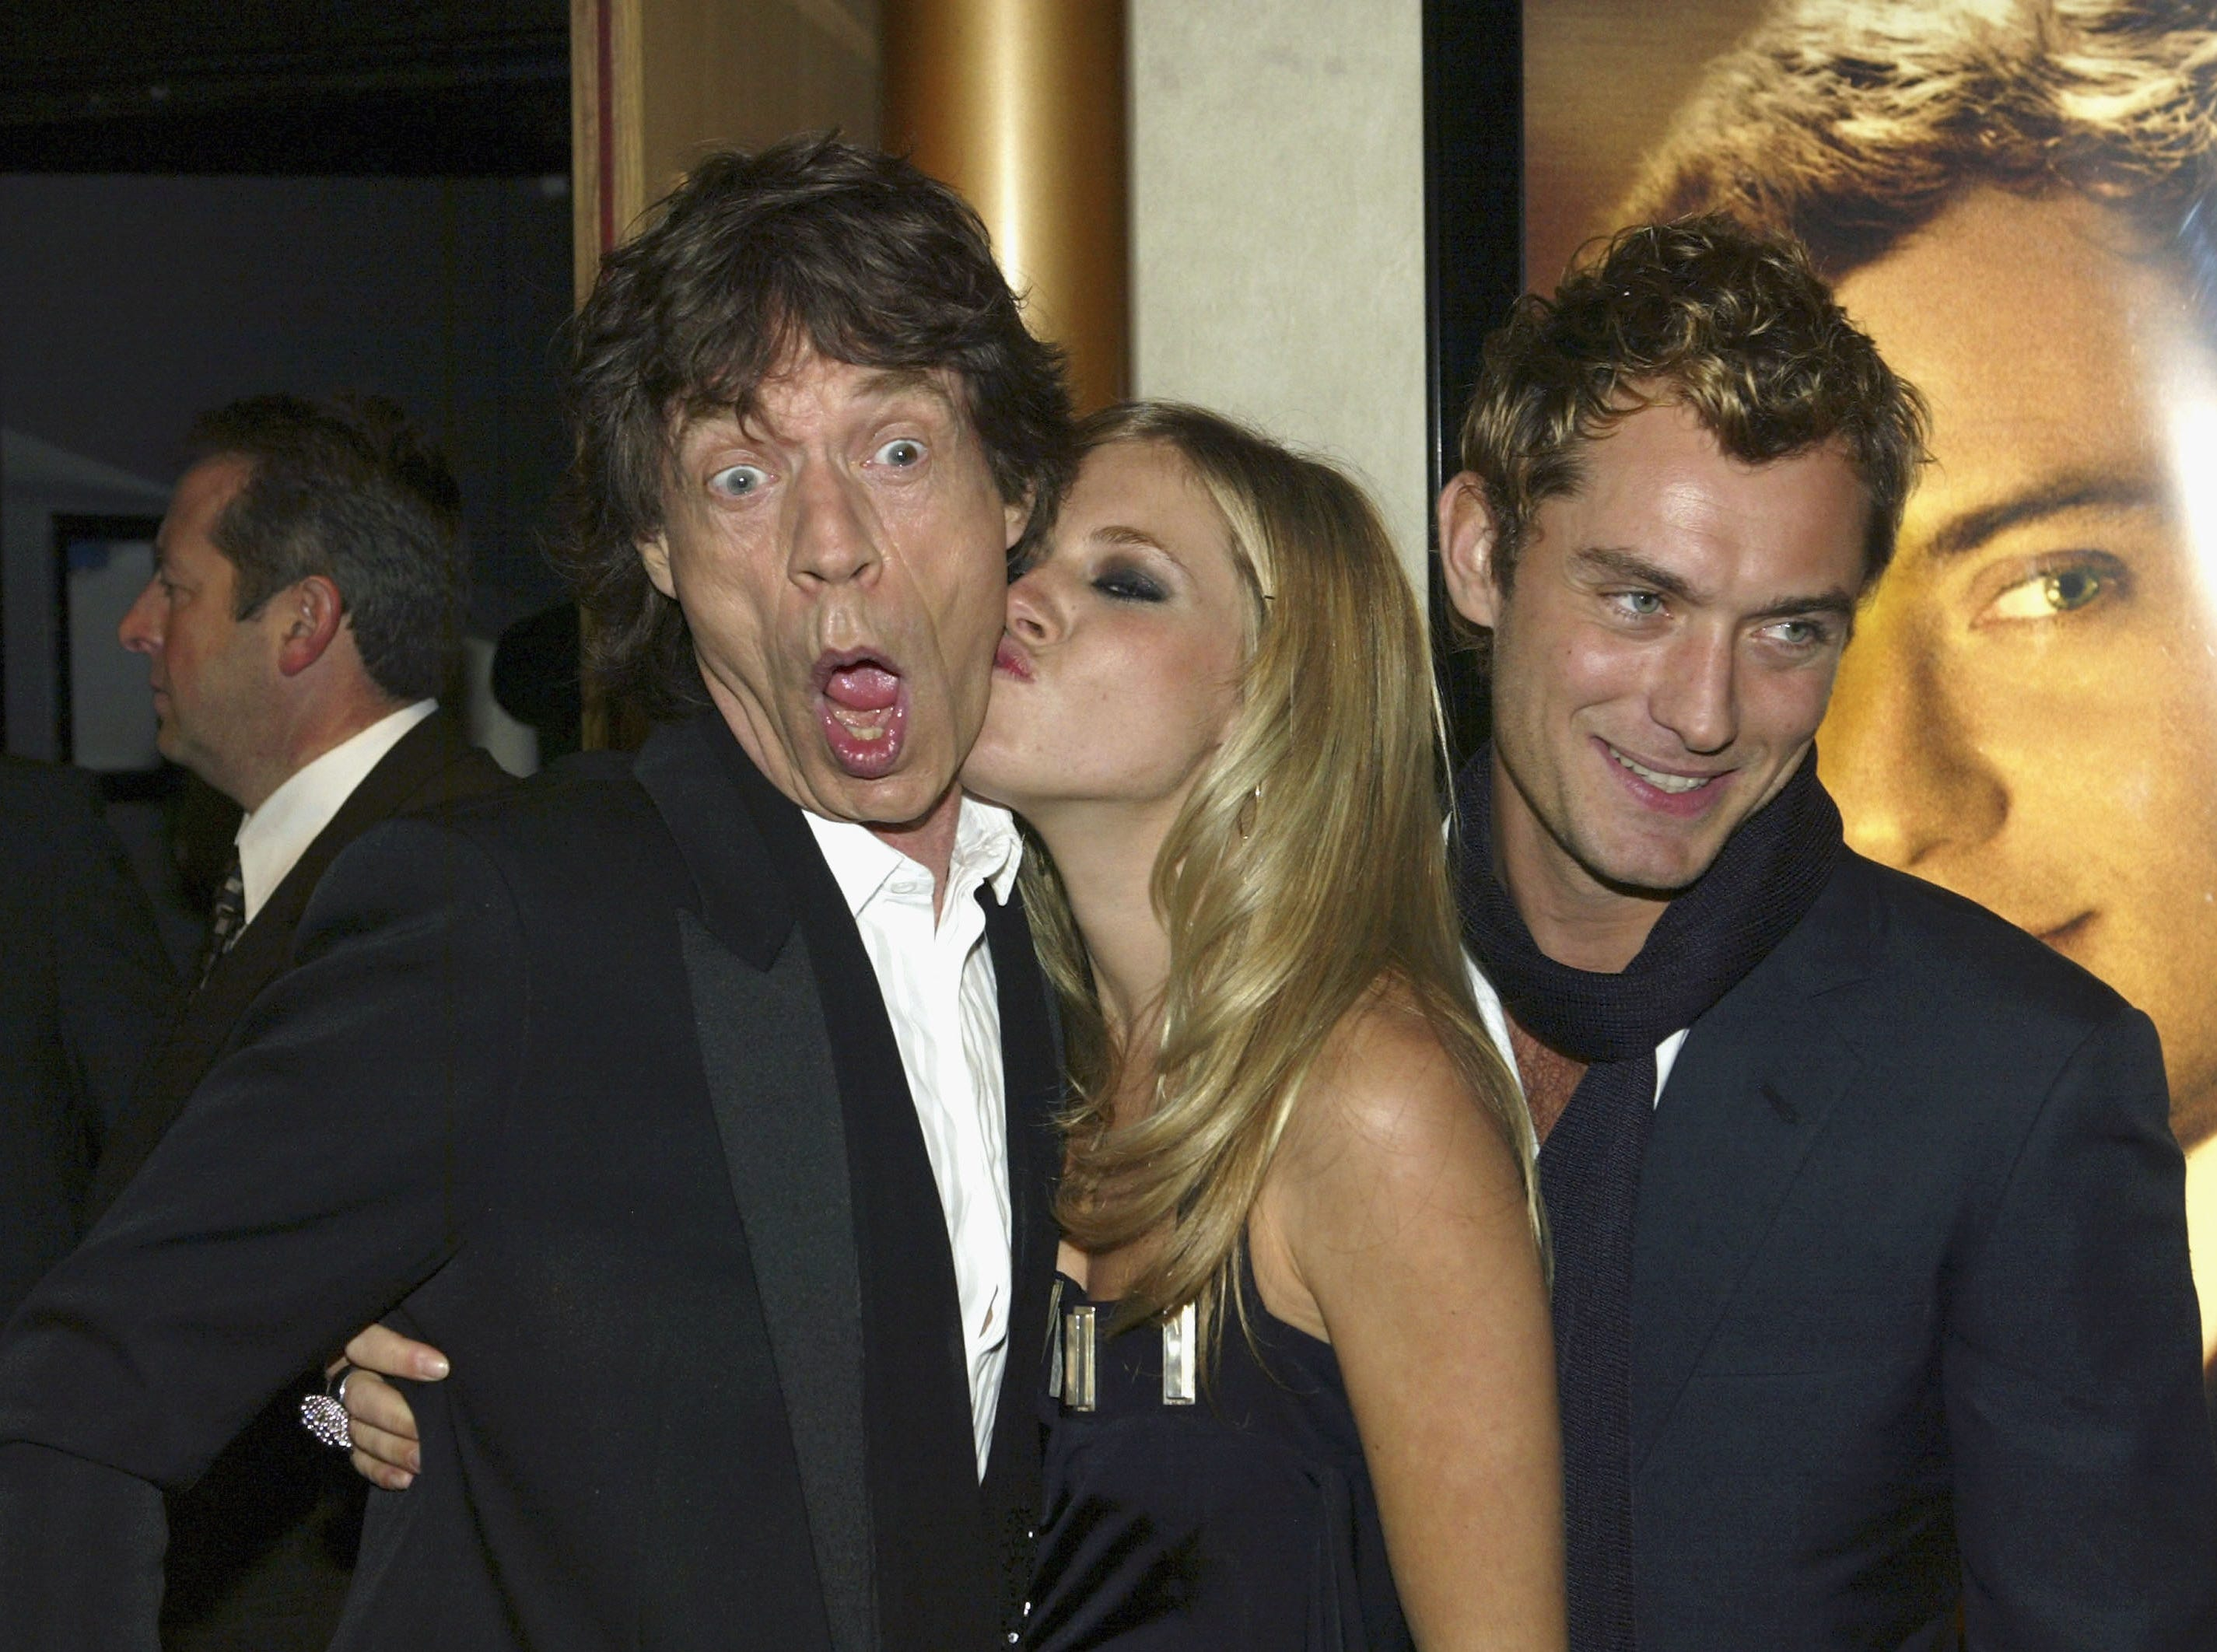 "LONDON -  OCTOBER 14: (UK TABLOID NEWSPAPERS OUT)  Singer Mick Jagger and actors Sienna Miller and Jude Law  arrive at the World Premiere of ""Alfie"" at the Empire Leicester Square on October 14, 2004 in London. (Photo by Dave Hogan/Getty Images) *** Local Caption *** Mick Jagger;Sienna Miller;Jude Law   ORG XMIT: 51442264 GTY ID:  51442264DHN001_alfie"